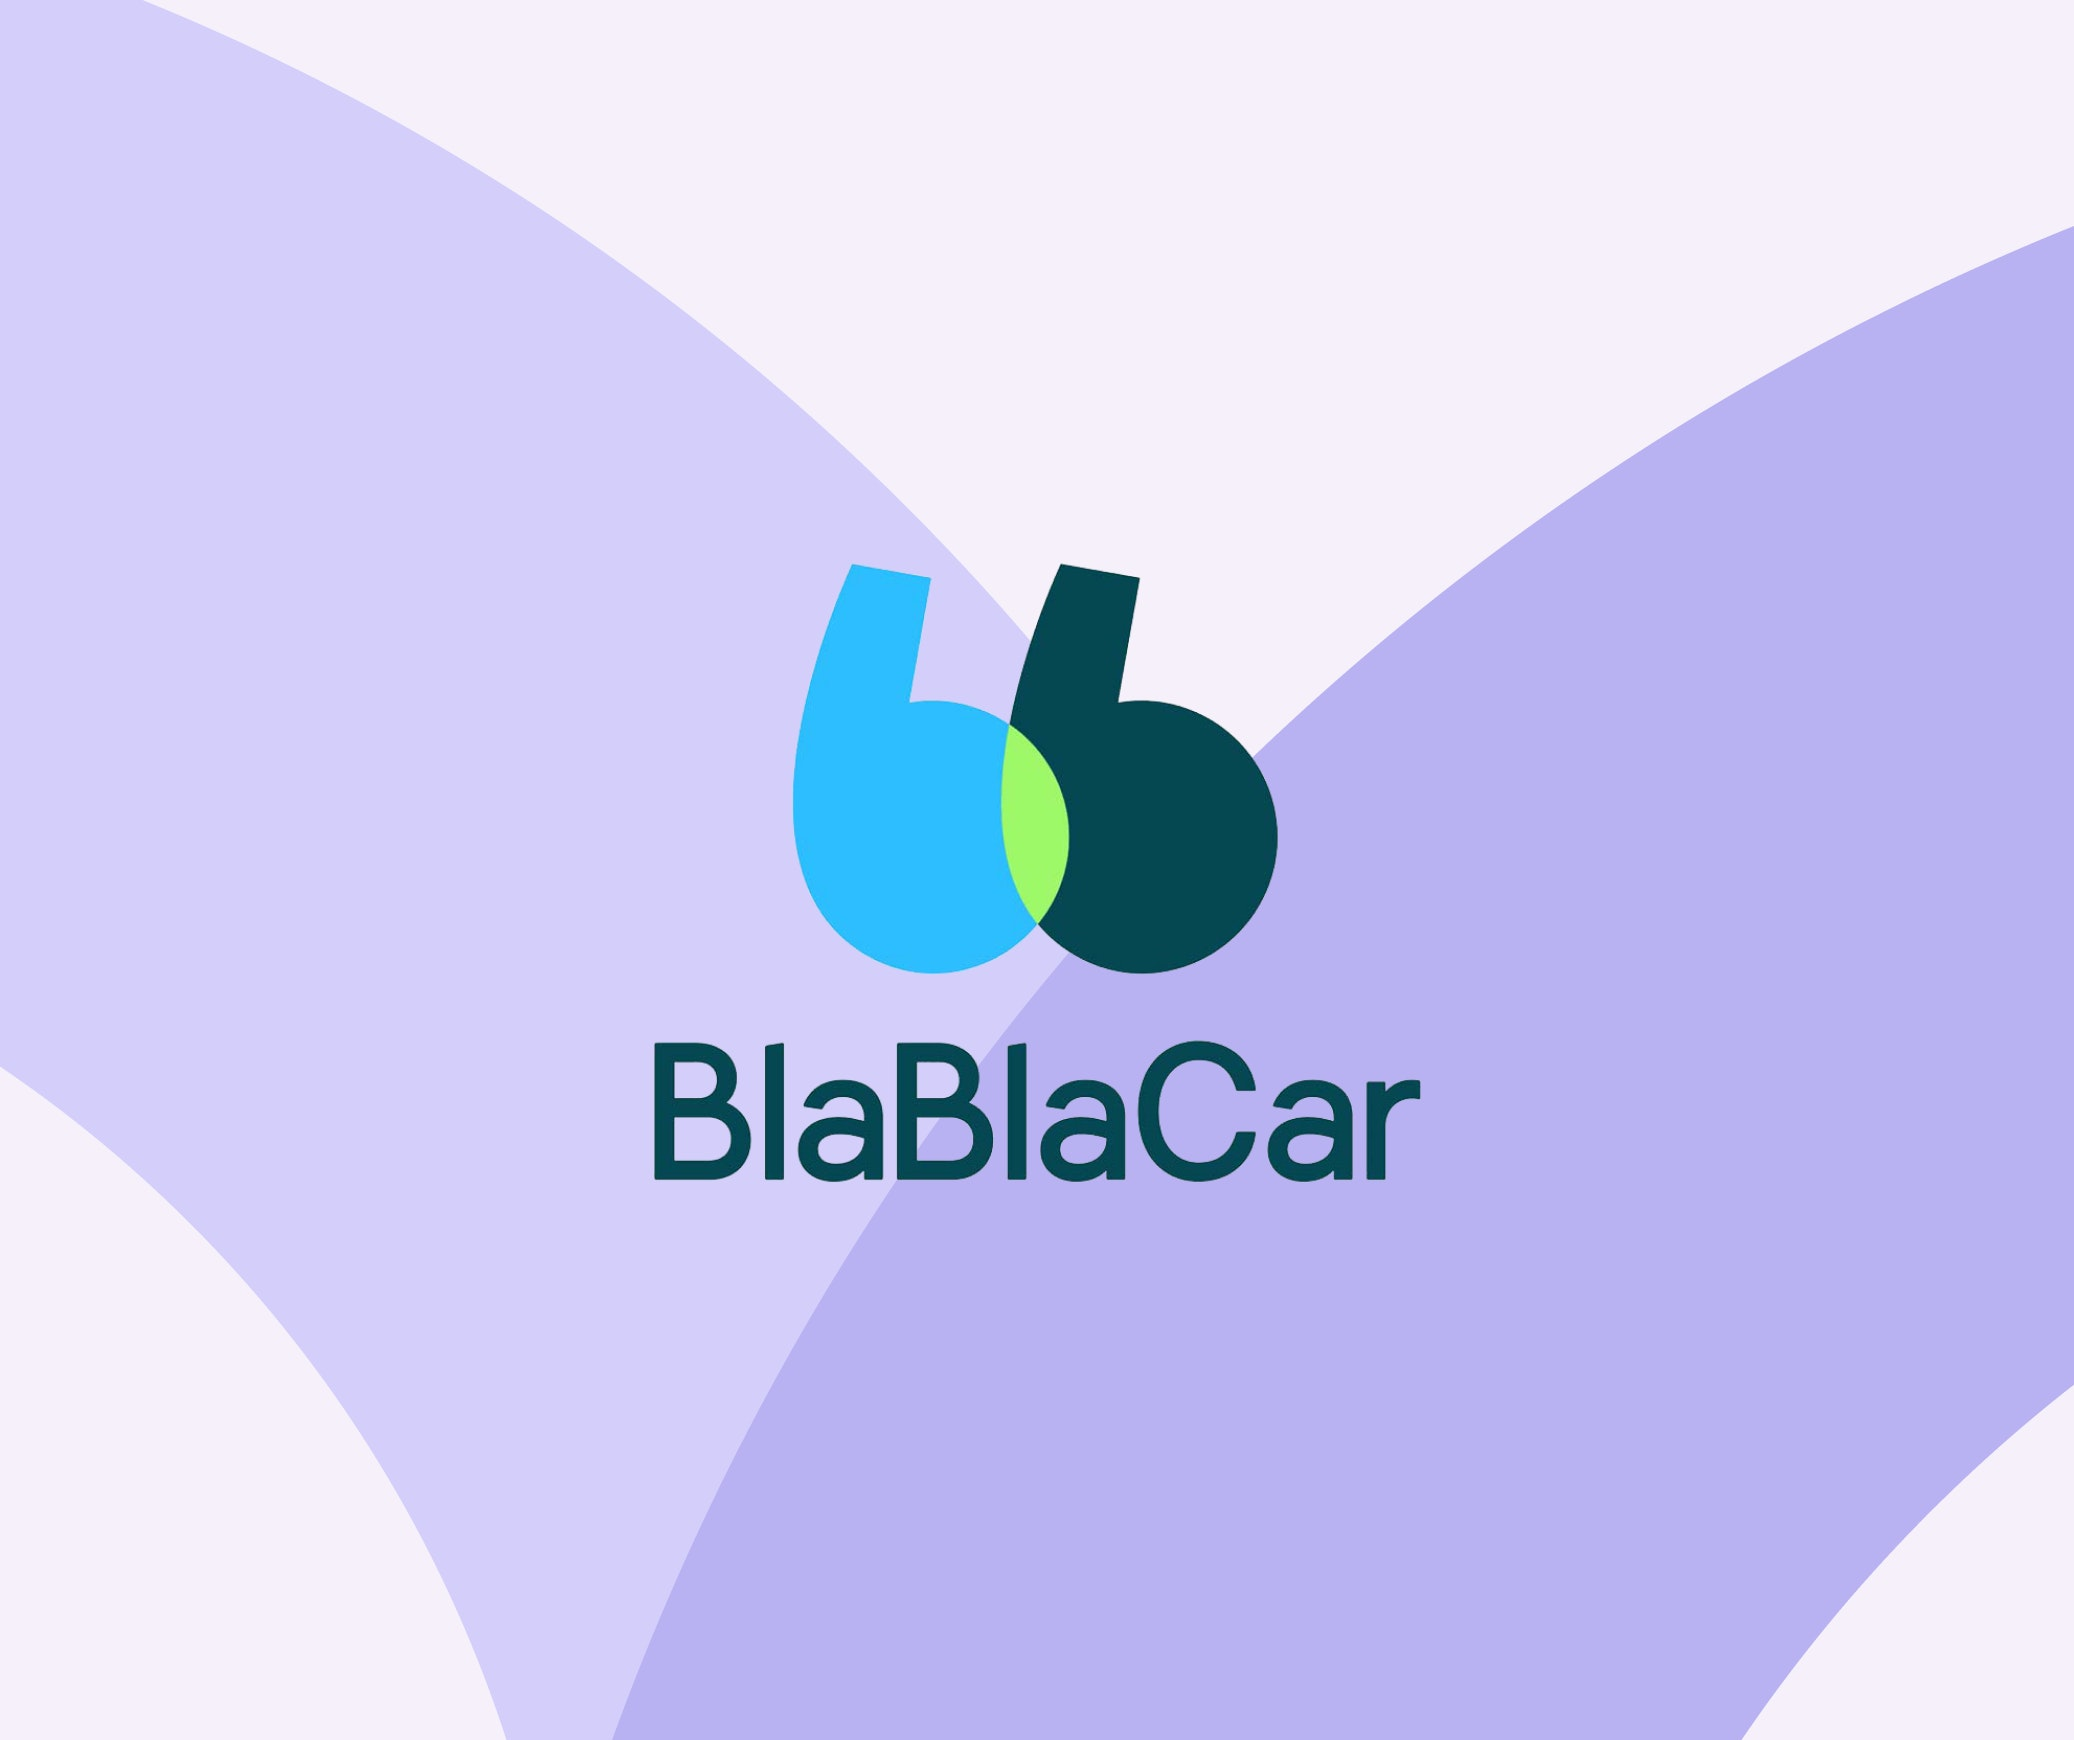 BlaBlaCar democratizes research and testing with Maze